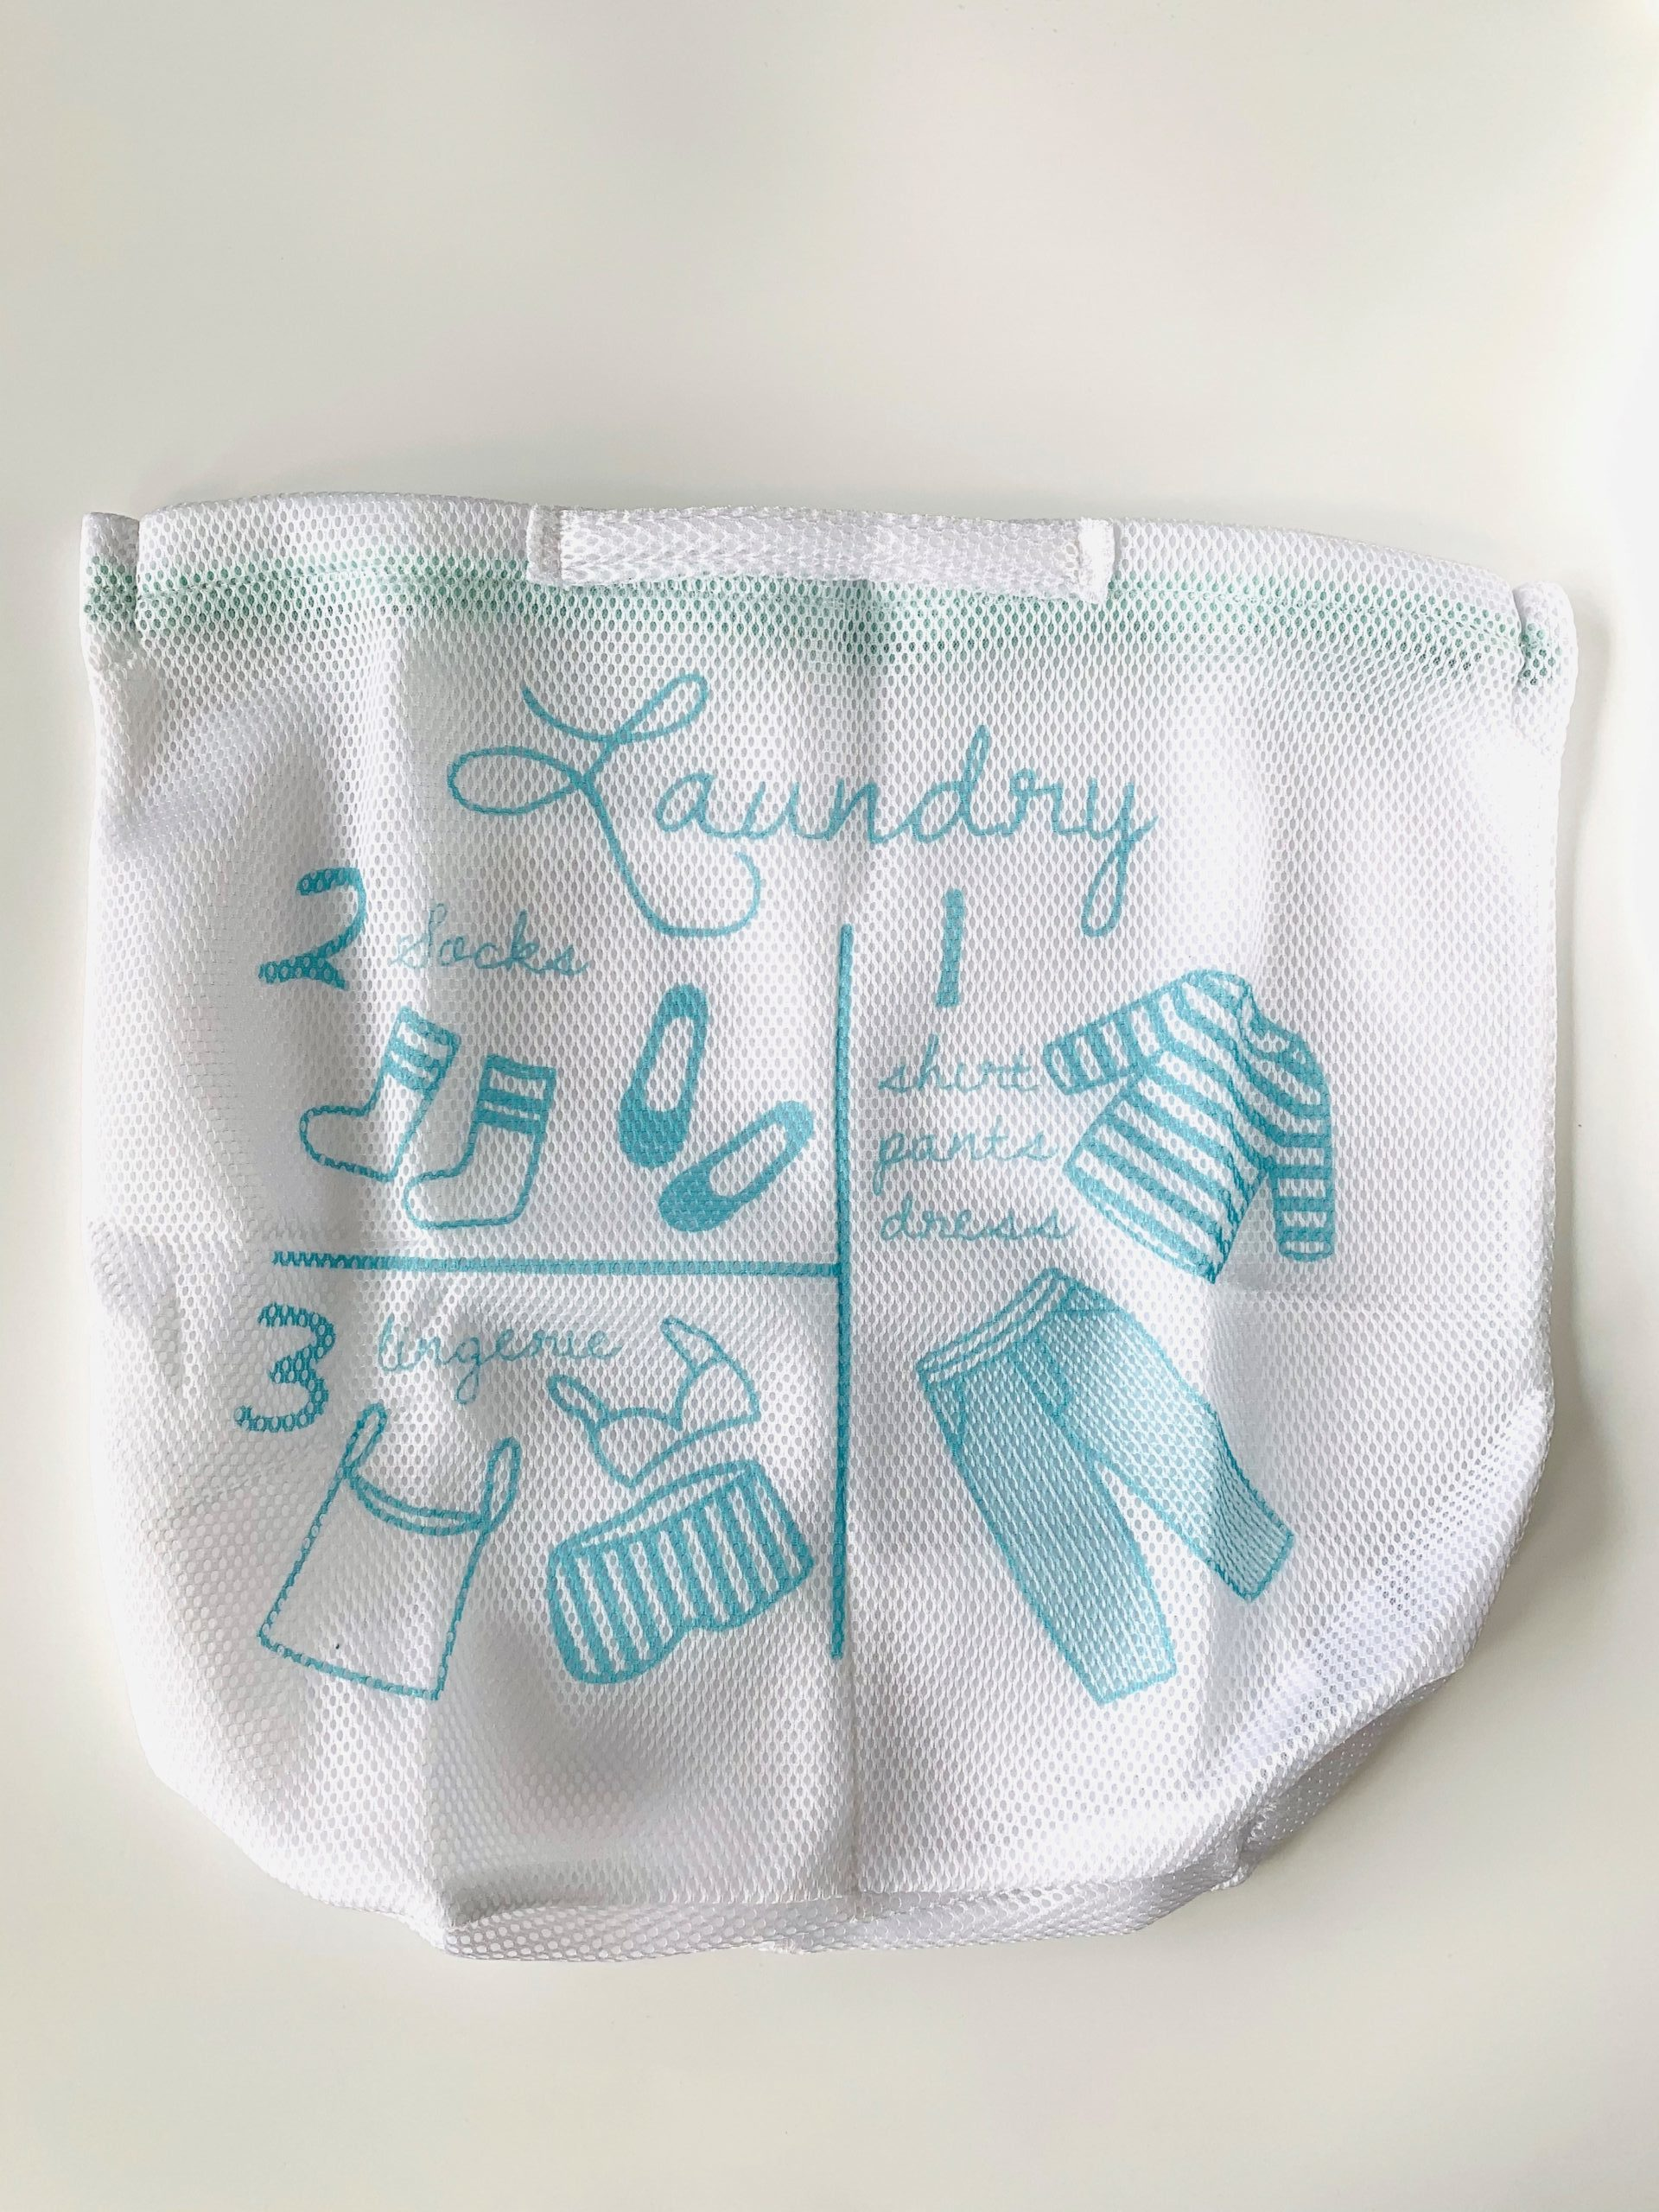 three dividers laundry net bag picture